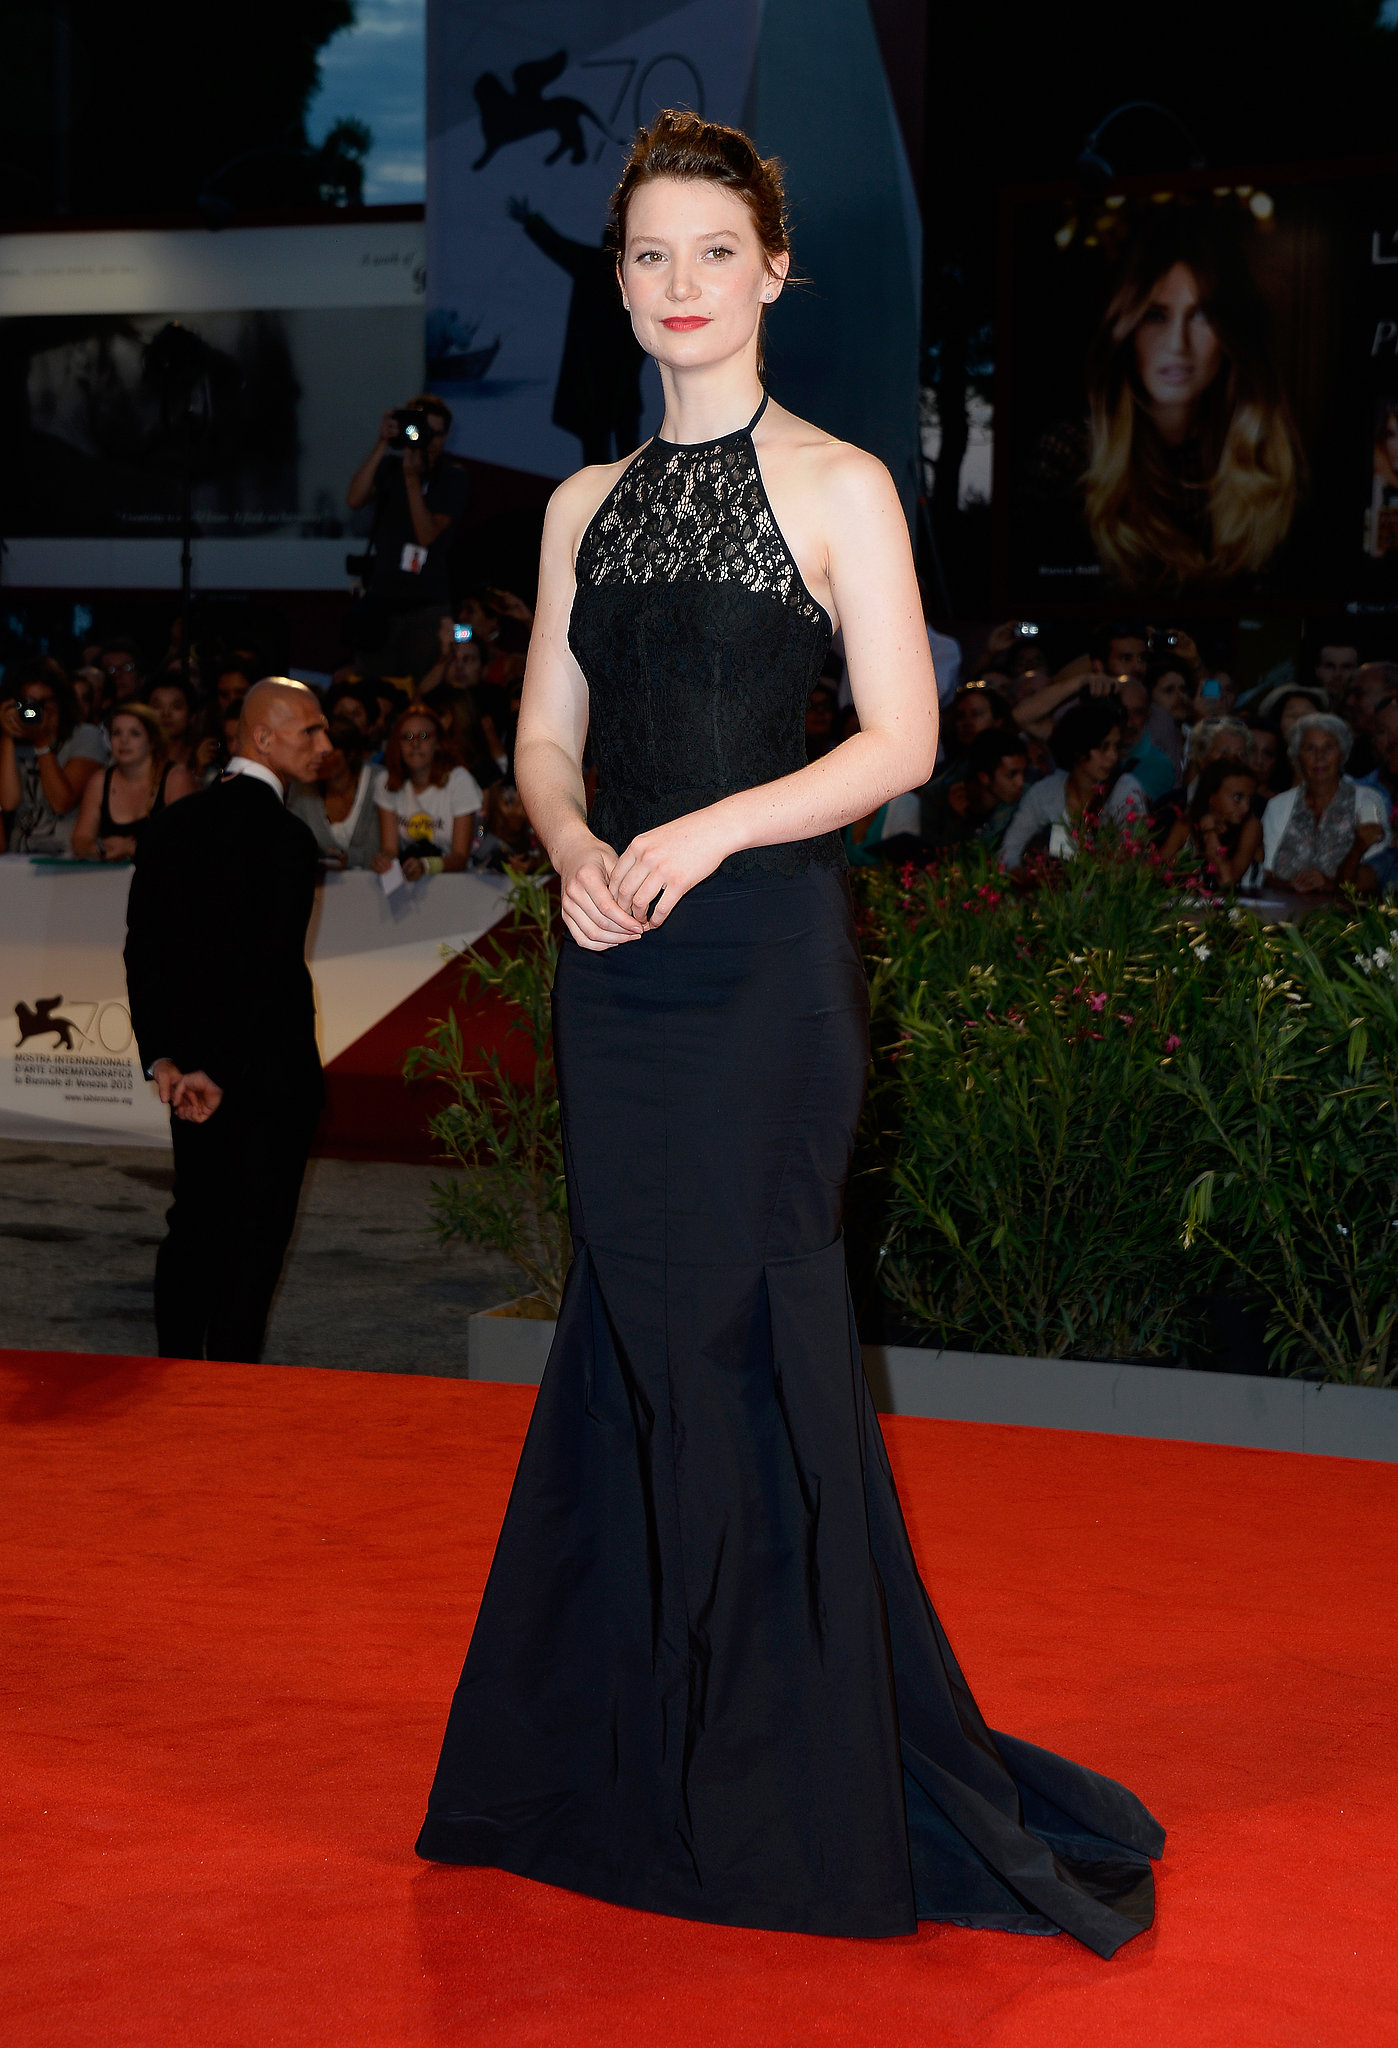 Mia Wasikowska made a dramatic entrance on the Venice Film Festival red carpet